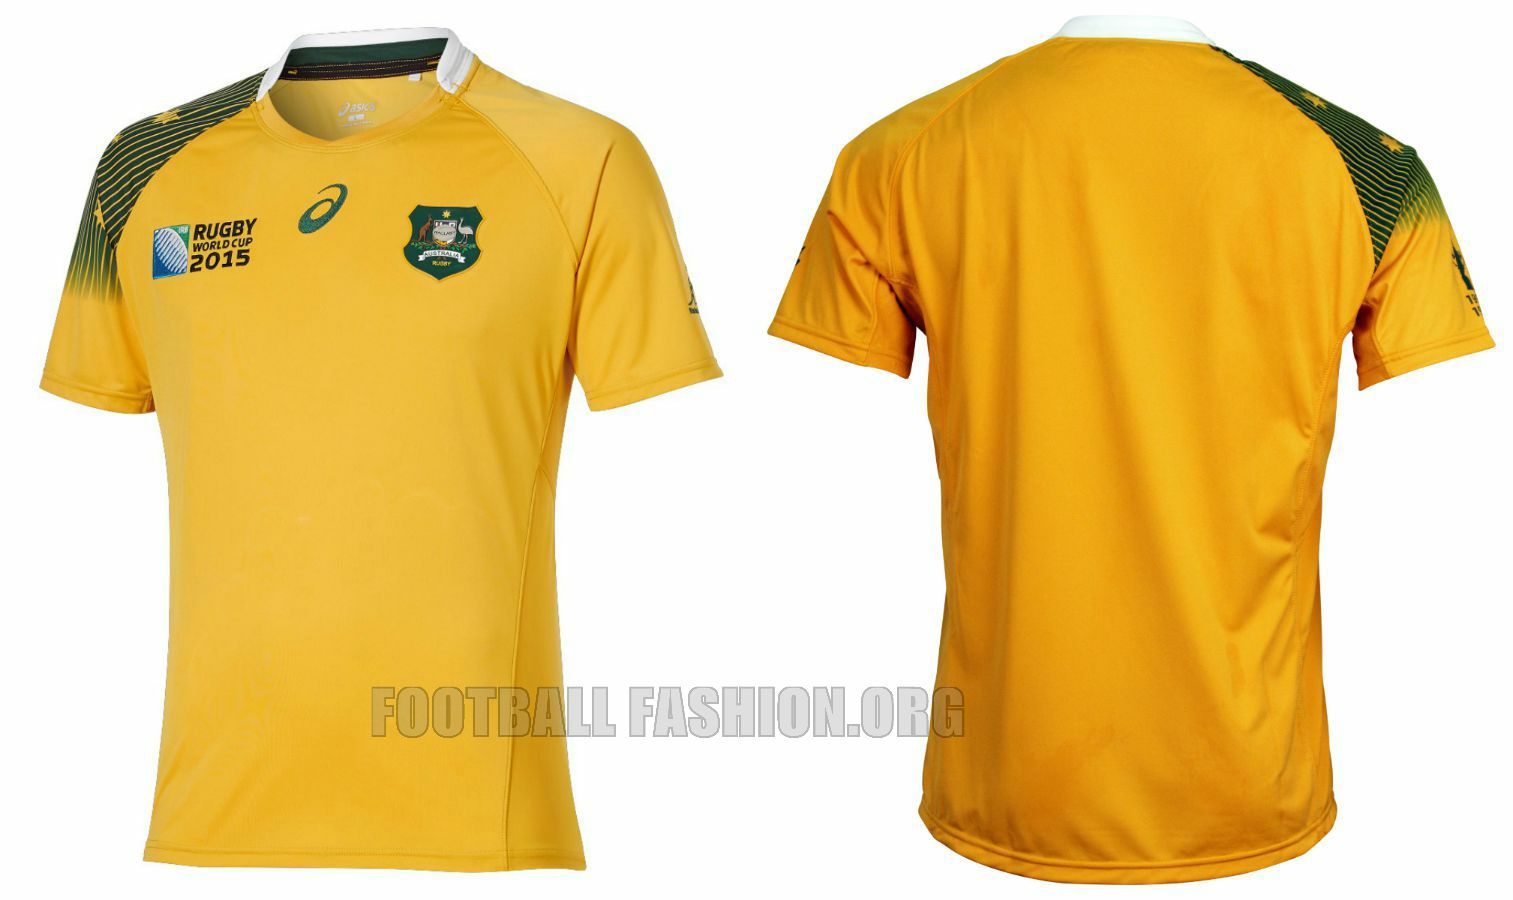 Australia Wallabies 2015 Rugby World Cup Asics Home And Away Jerseys Football Fashion Org 2015 Rugby World Cup Rugby World Cup Rugby